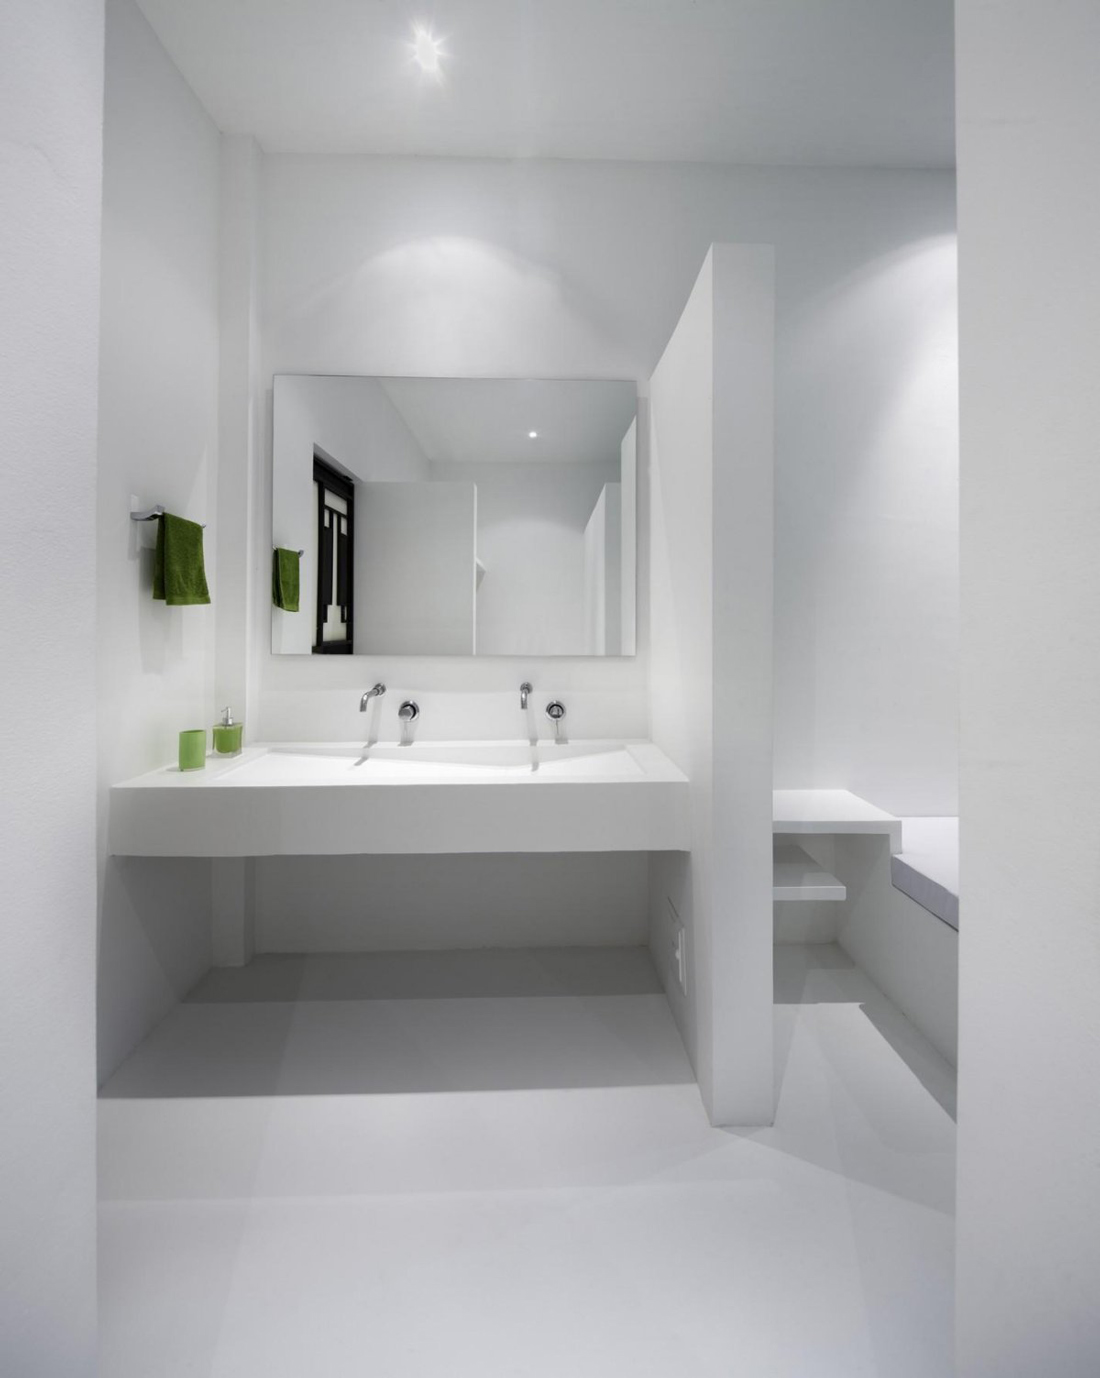 Bathroom, Modern House in Girardot, Colombia